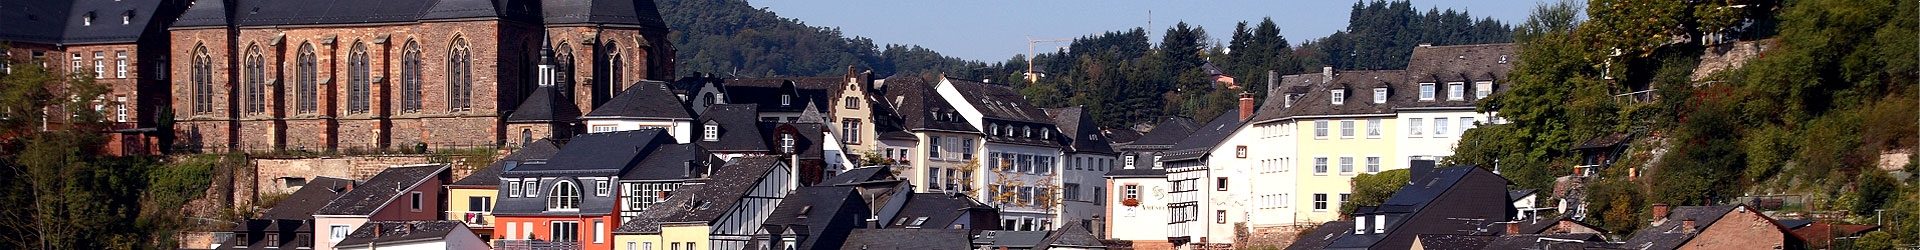 Headerbild-Saarburg